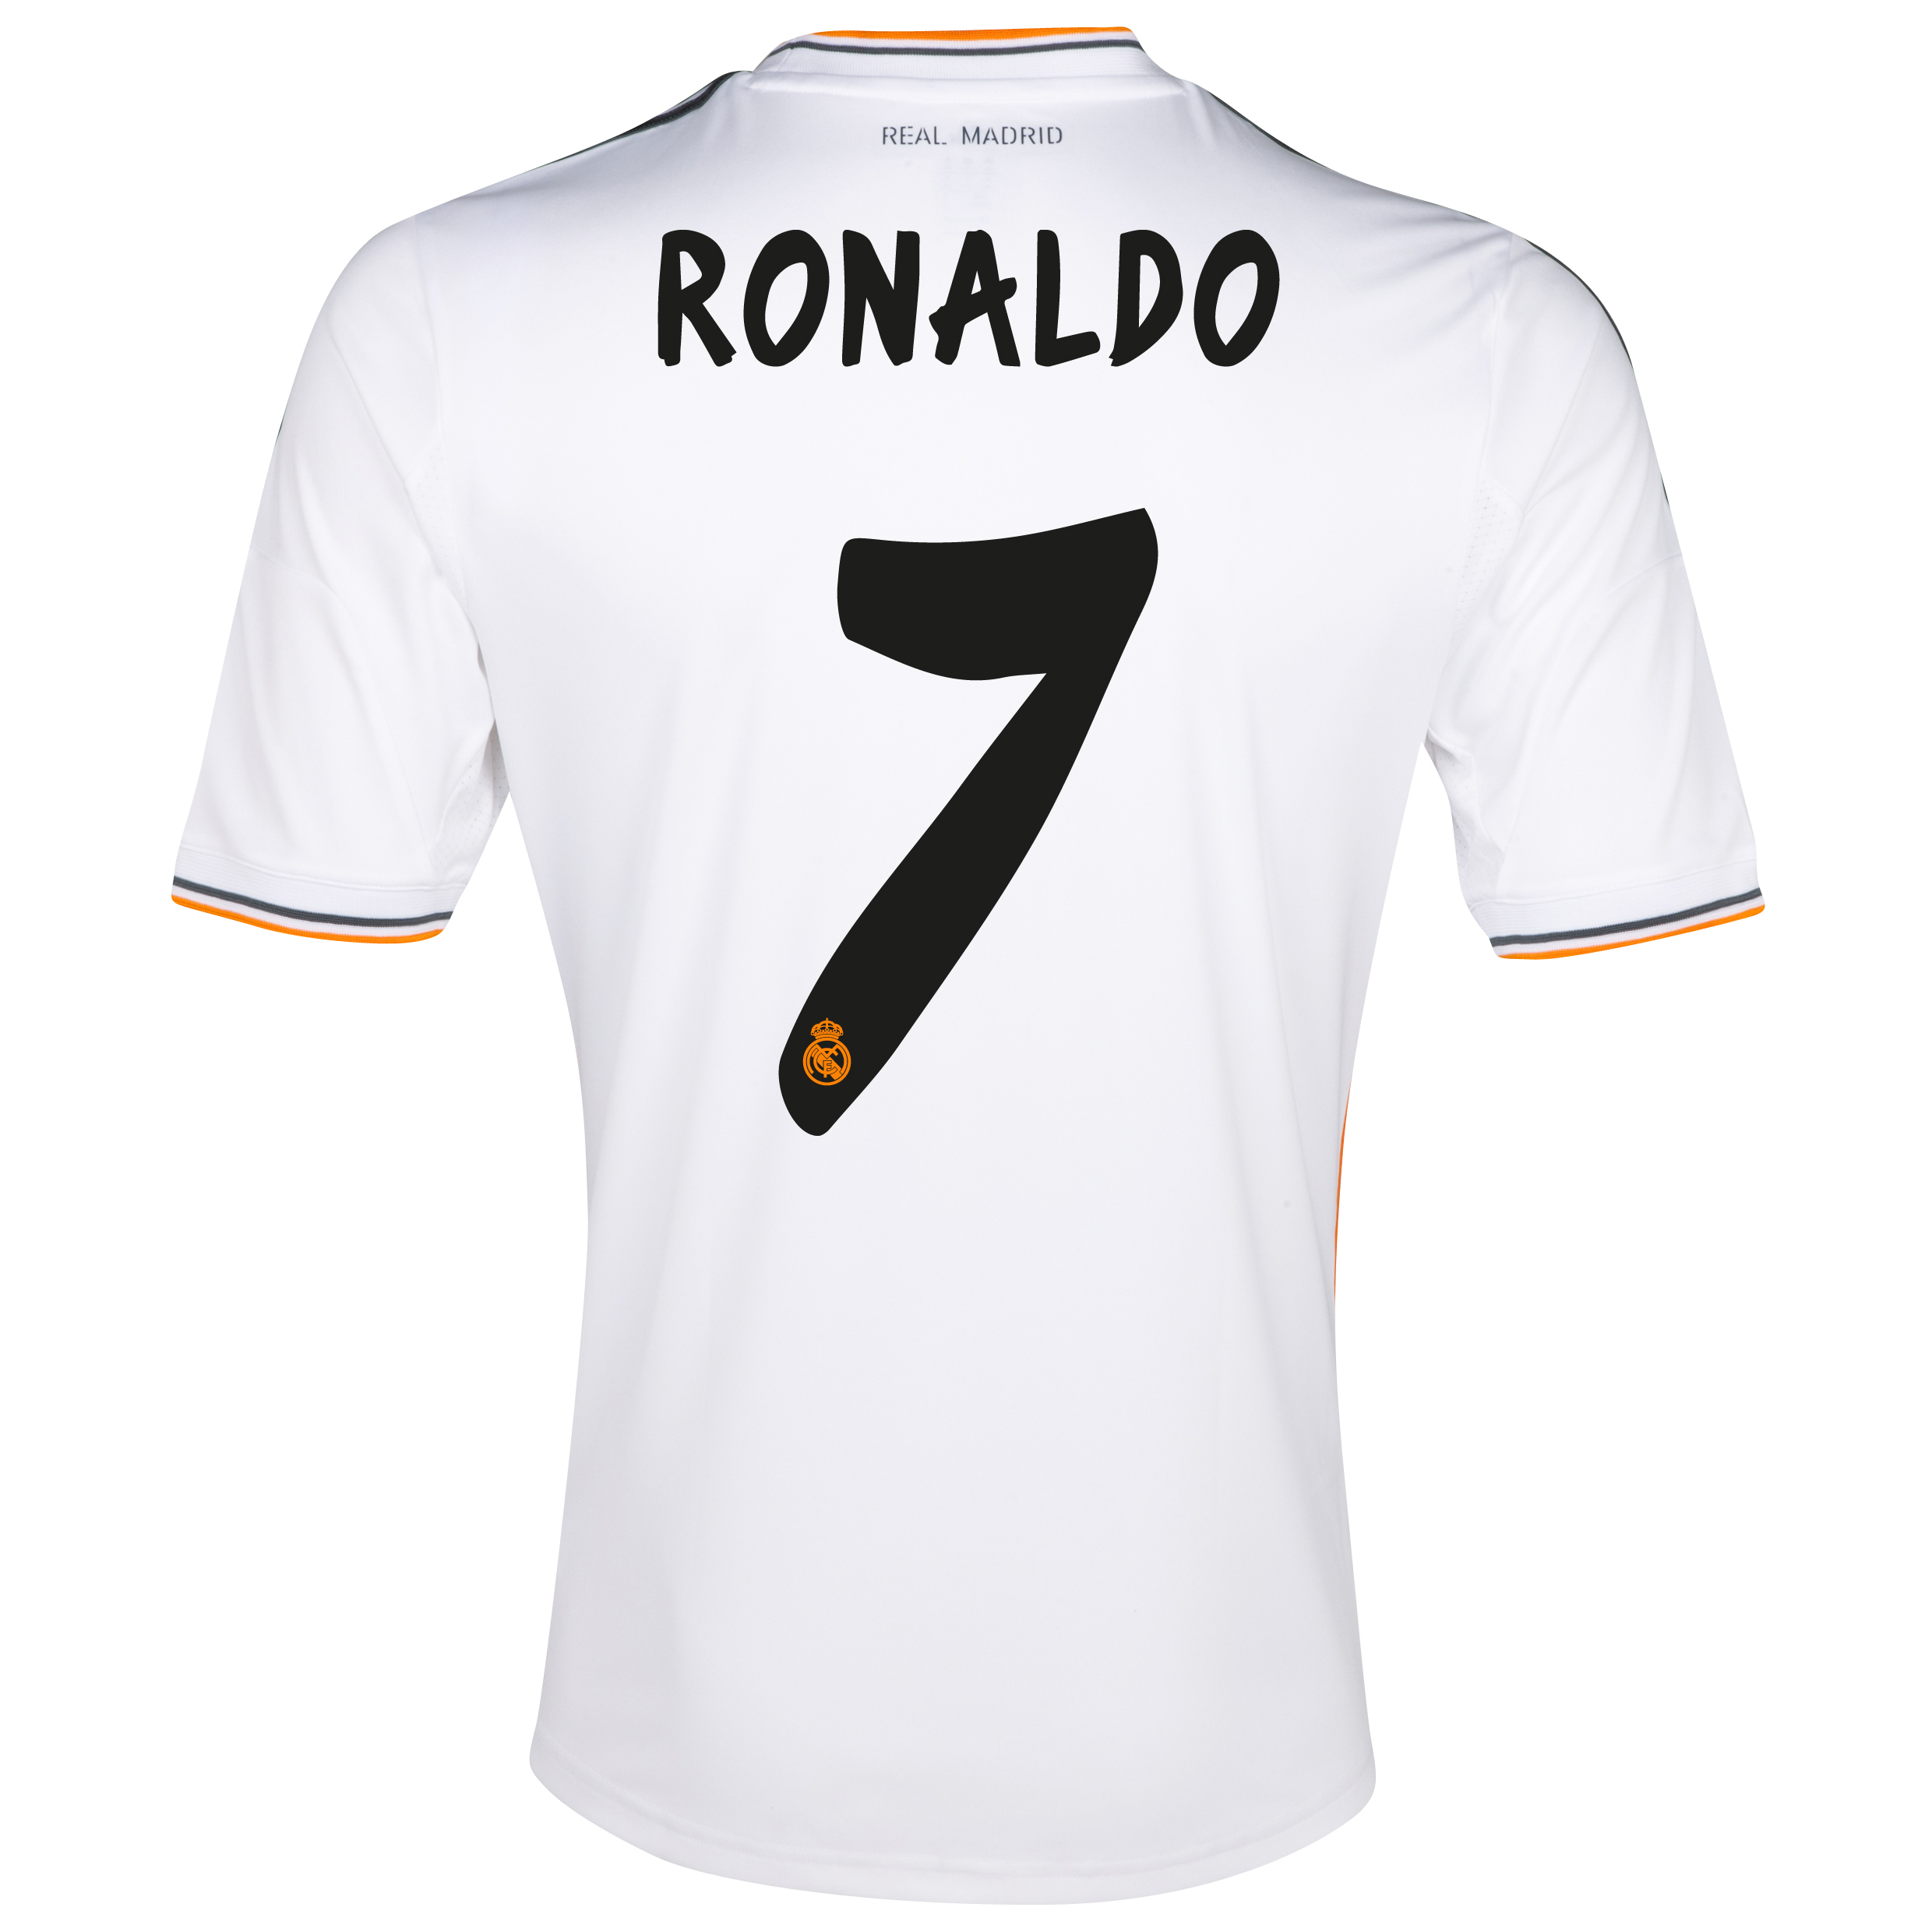 Real Madrid Home Shirt 2013/14 - Kids with Ronaldo 7 printing